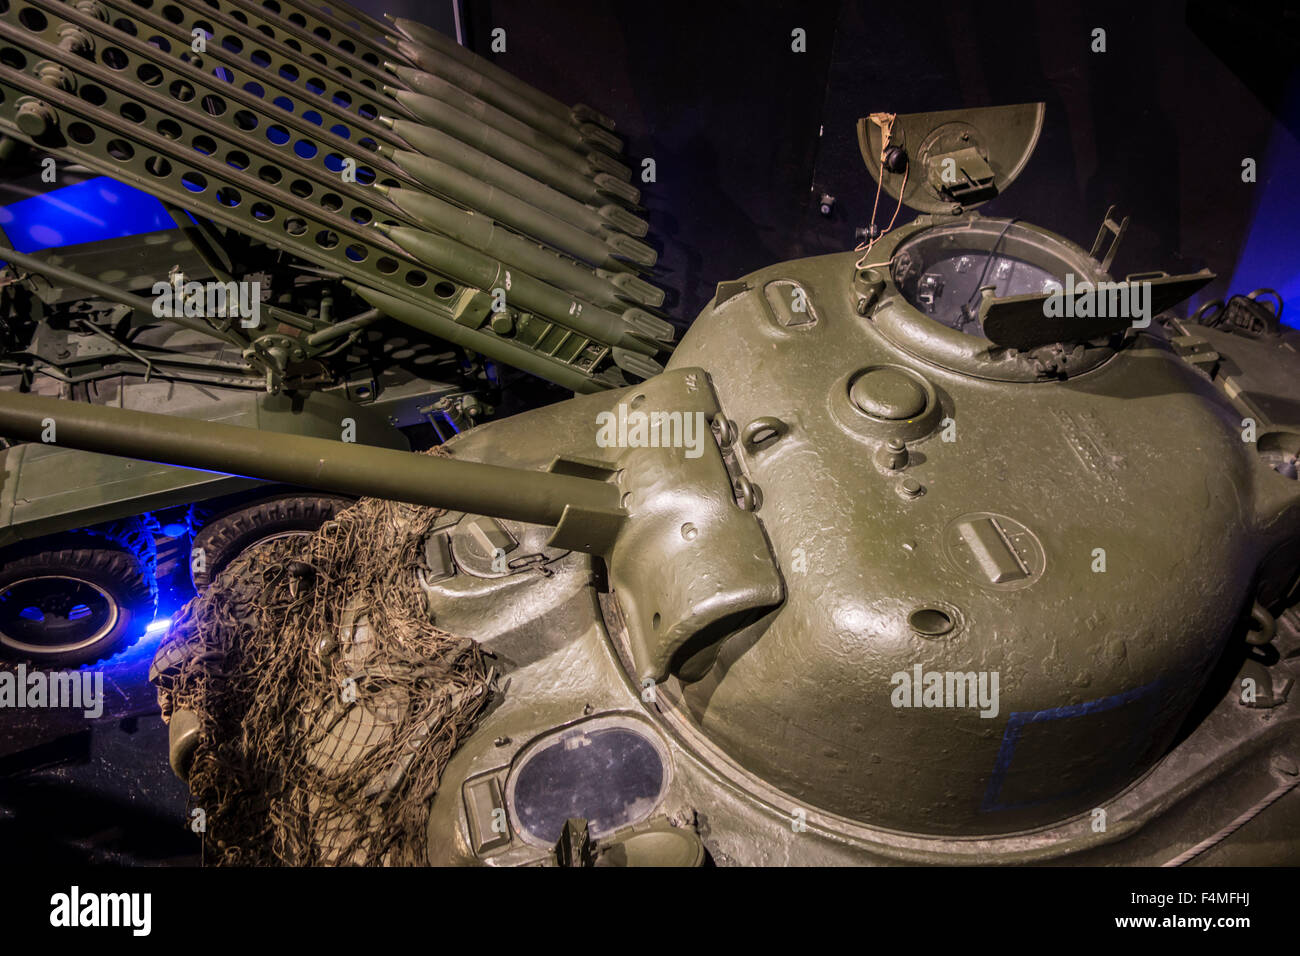 WW2 Soviet Katyusha multiple rocket launcher and M4 Sherman tank turret in the Mémorial de Caen, war museum - Stock Image